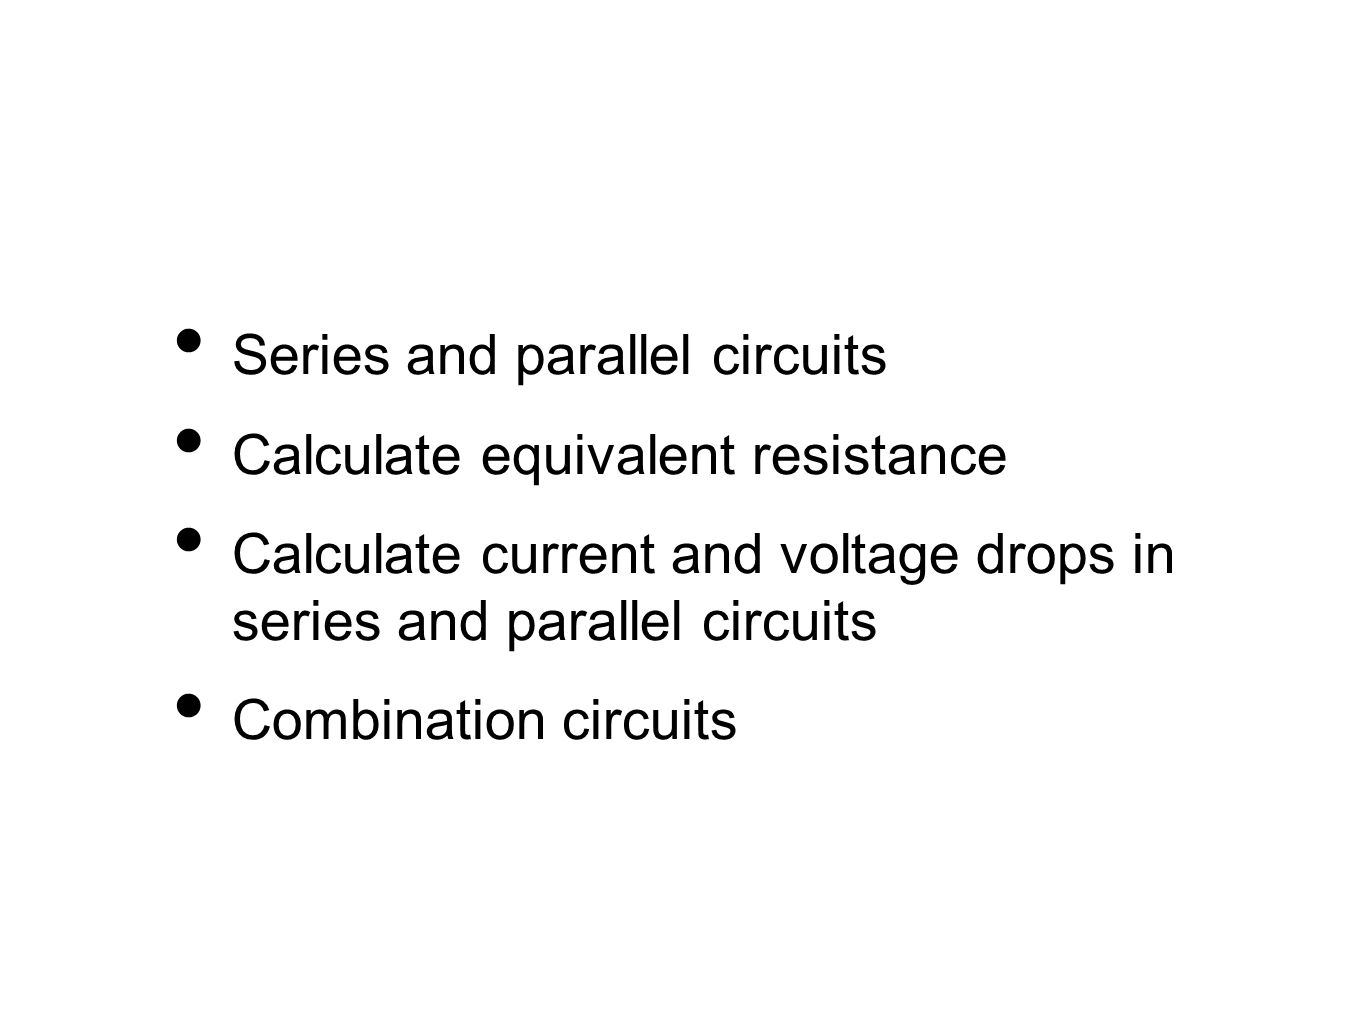 how to find resistance in parallel